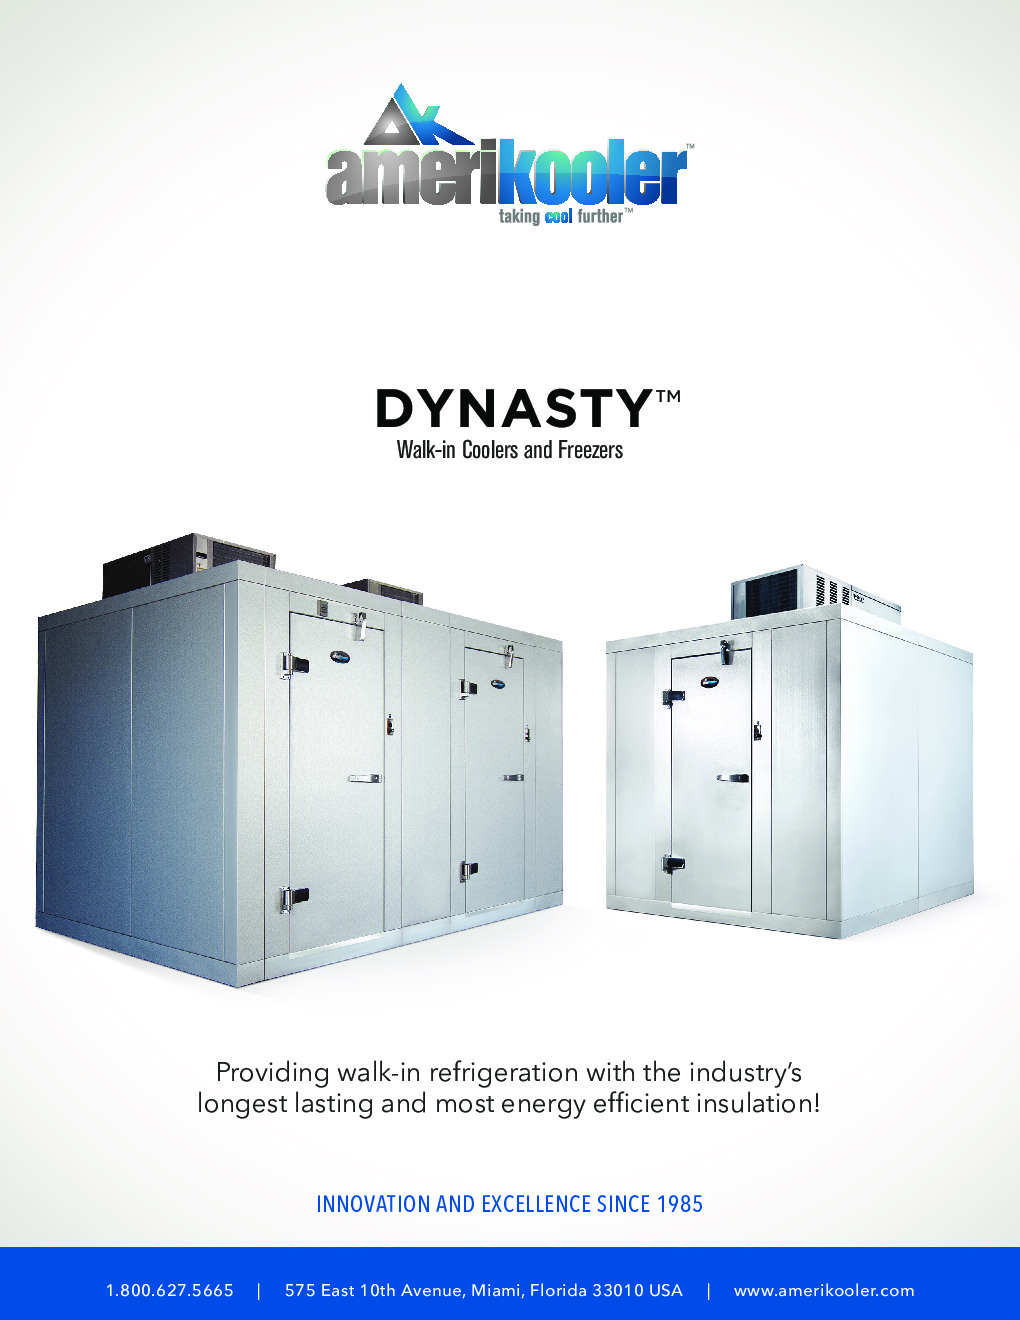 AmeriKooler DW091577N-5/10-RM 9' X 15' Walk-In Cooler, 10' L Cooler without Floor and 5' L Freezer, Remote